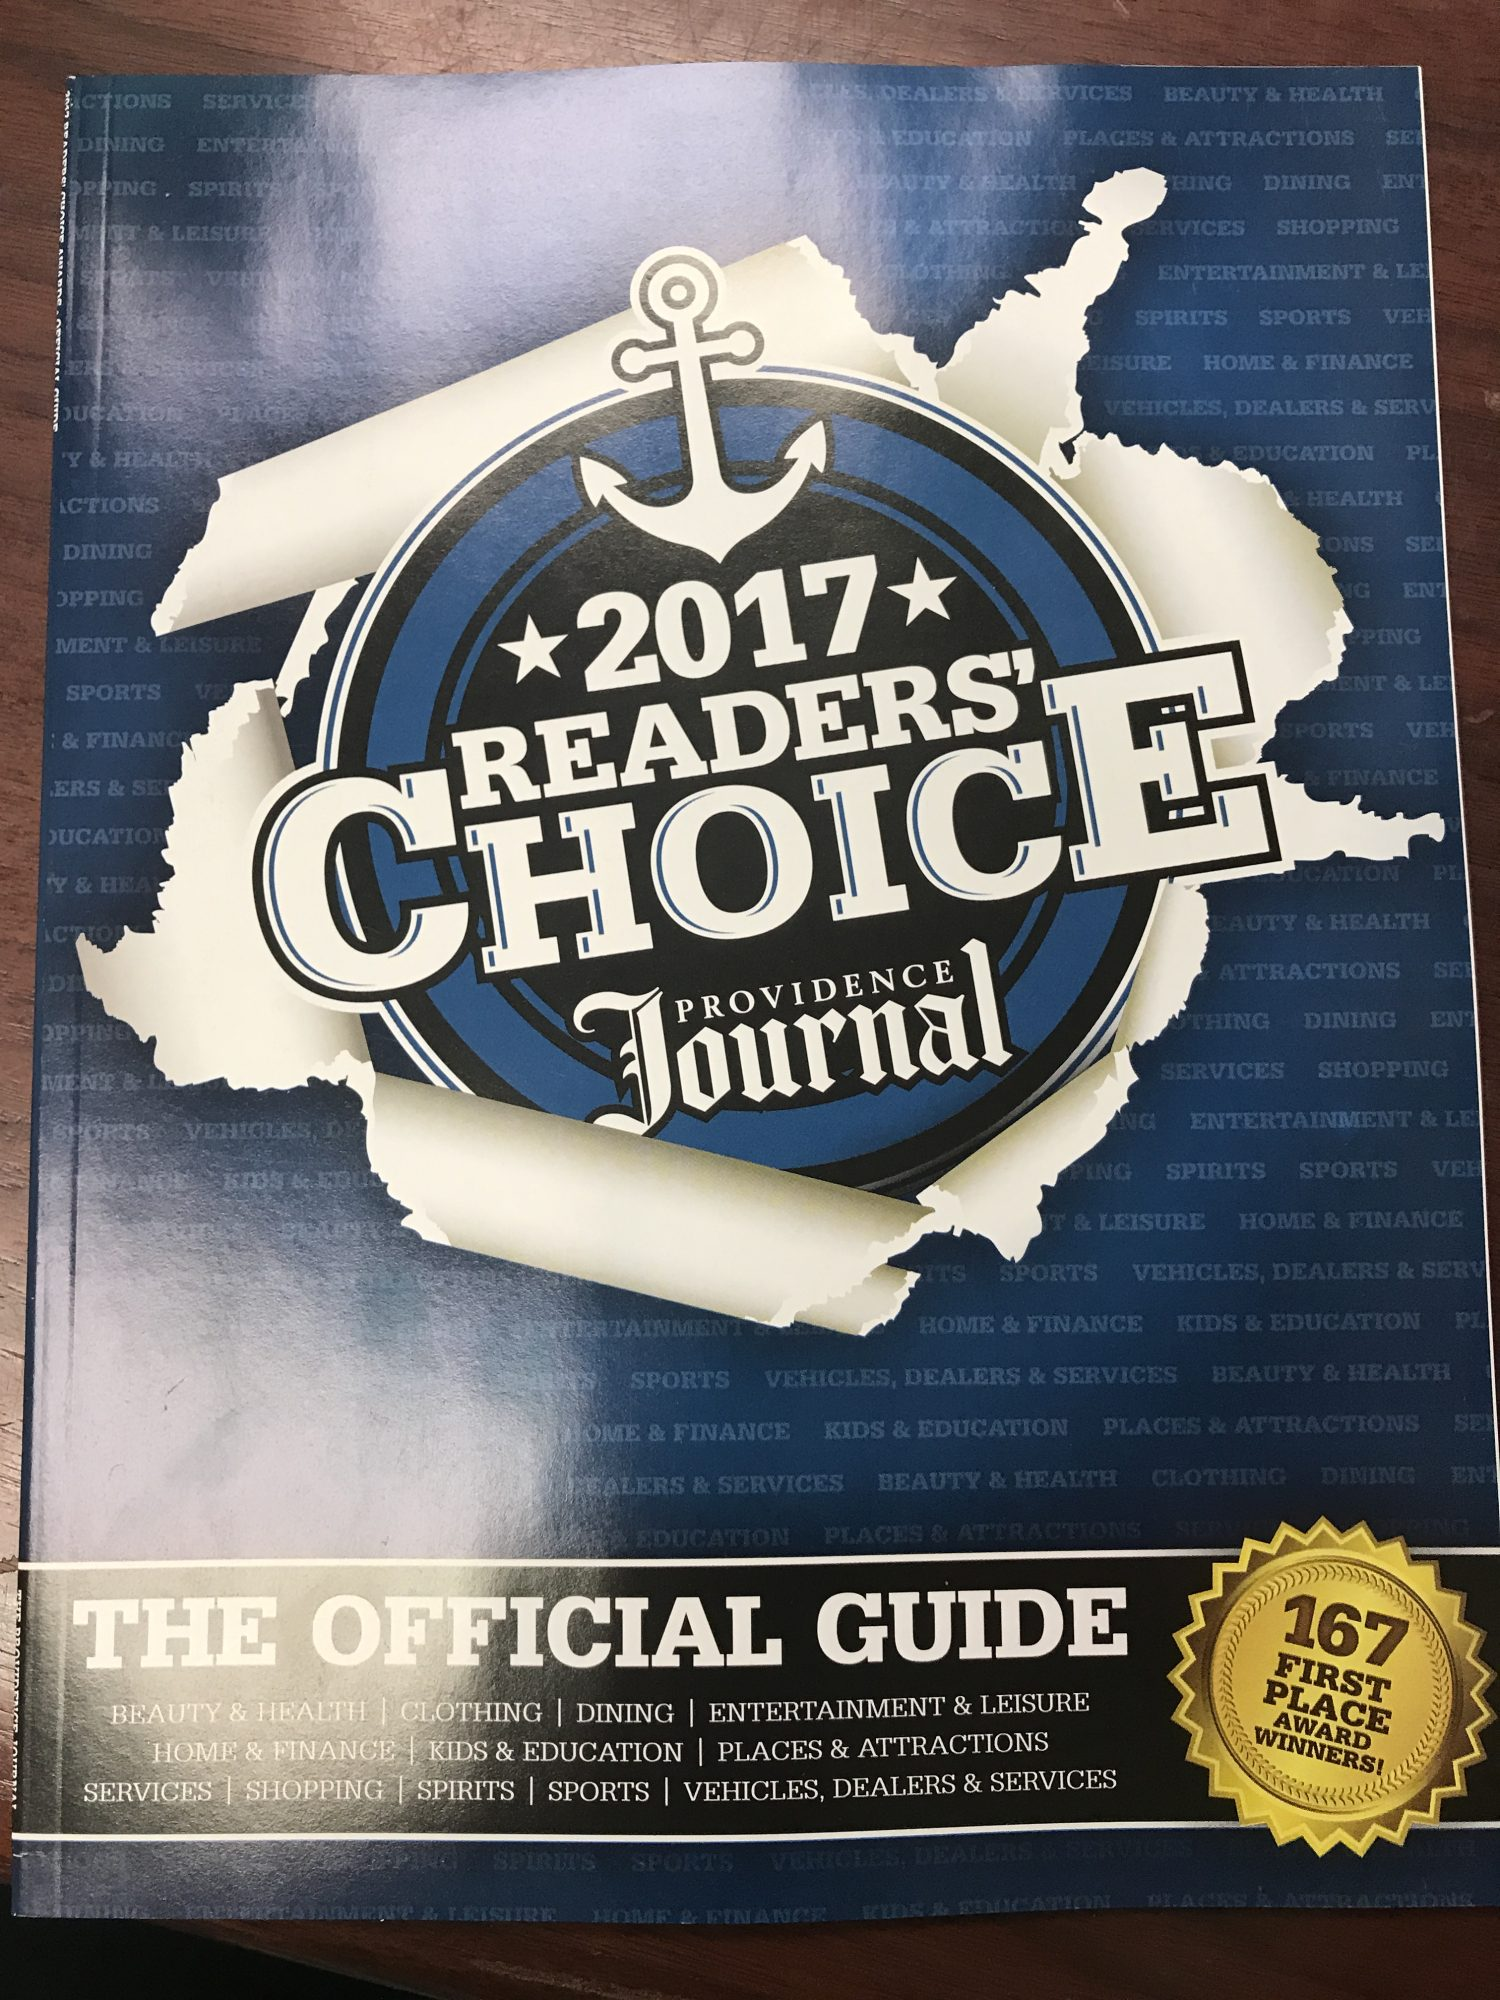 Reader's Choice Awards!